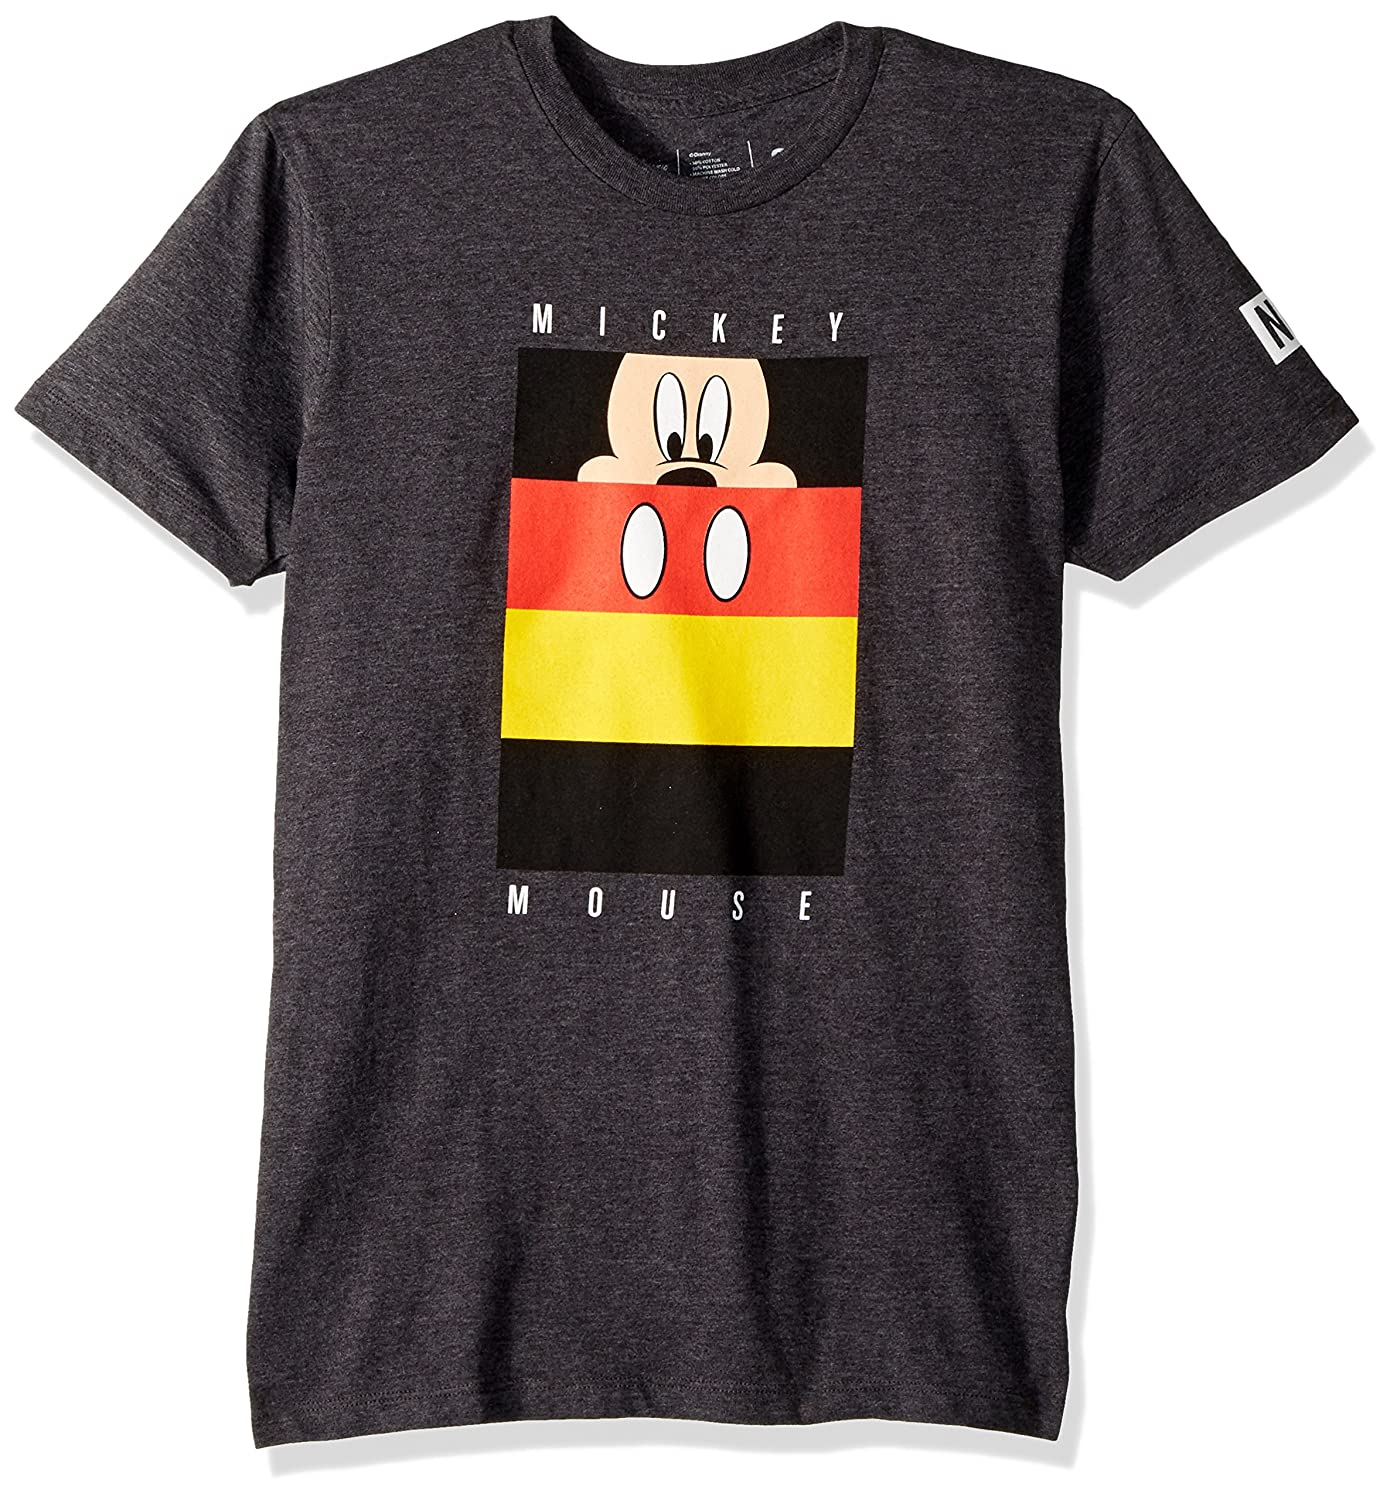 fbc47a104ecb9 Top 10 wholesale Cartoon Character Graphic Tees - Chinabrands.com